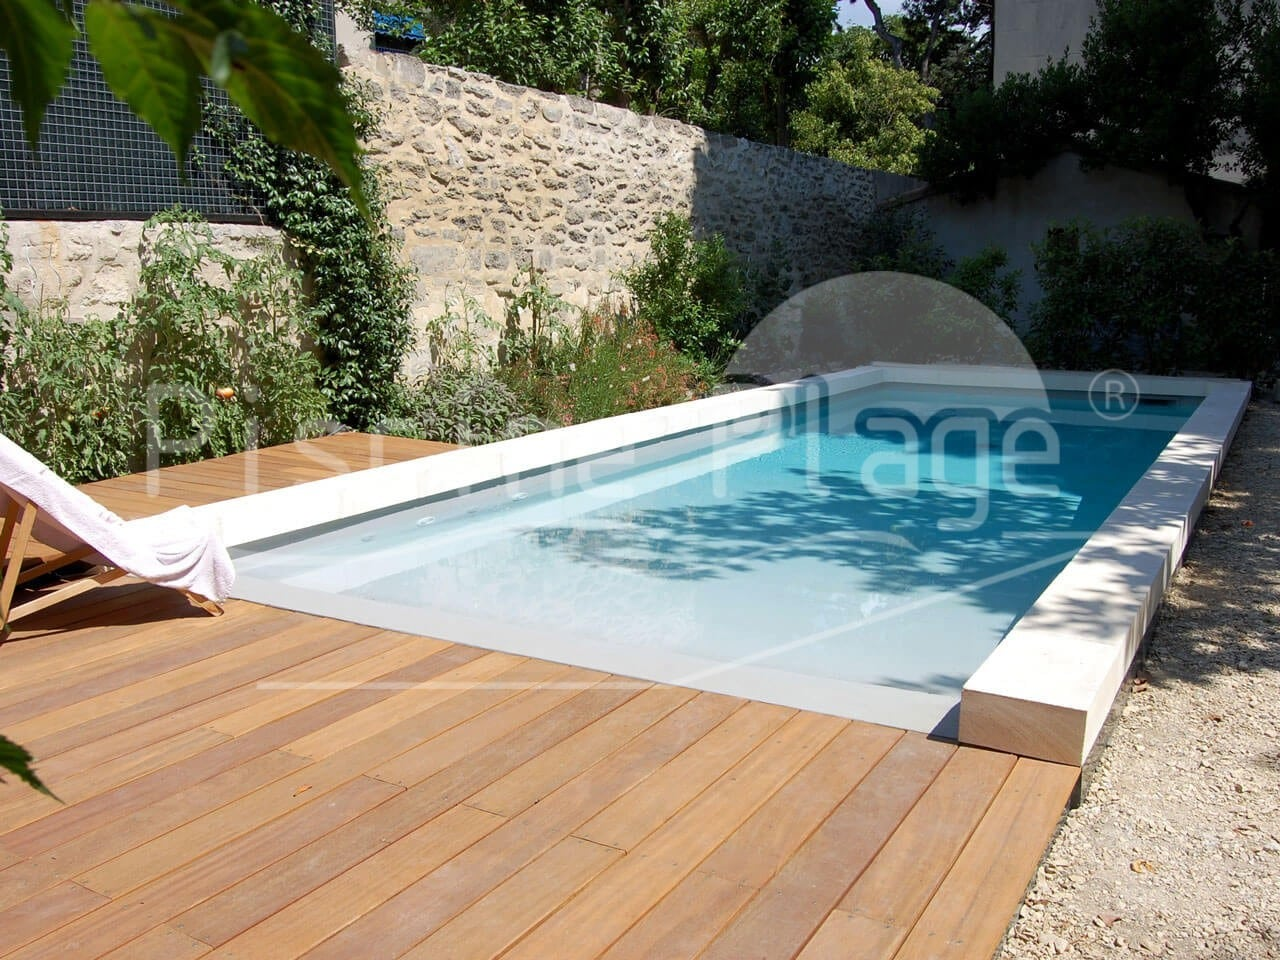 piscine plage forme rectangulaire dans le vaucluse les bouches du rh ne le gard piscine plage. Black Bedroom Furniture Sets. Home Design Ideas